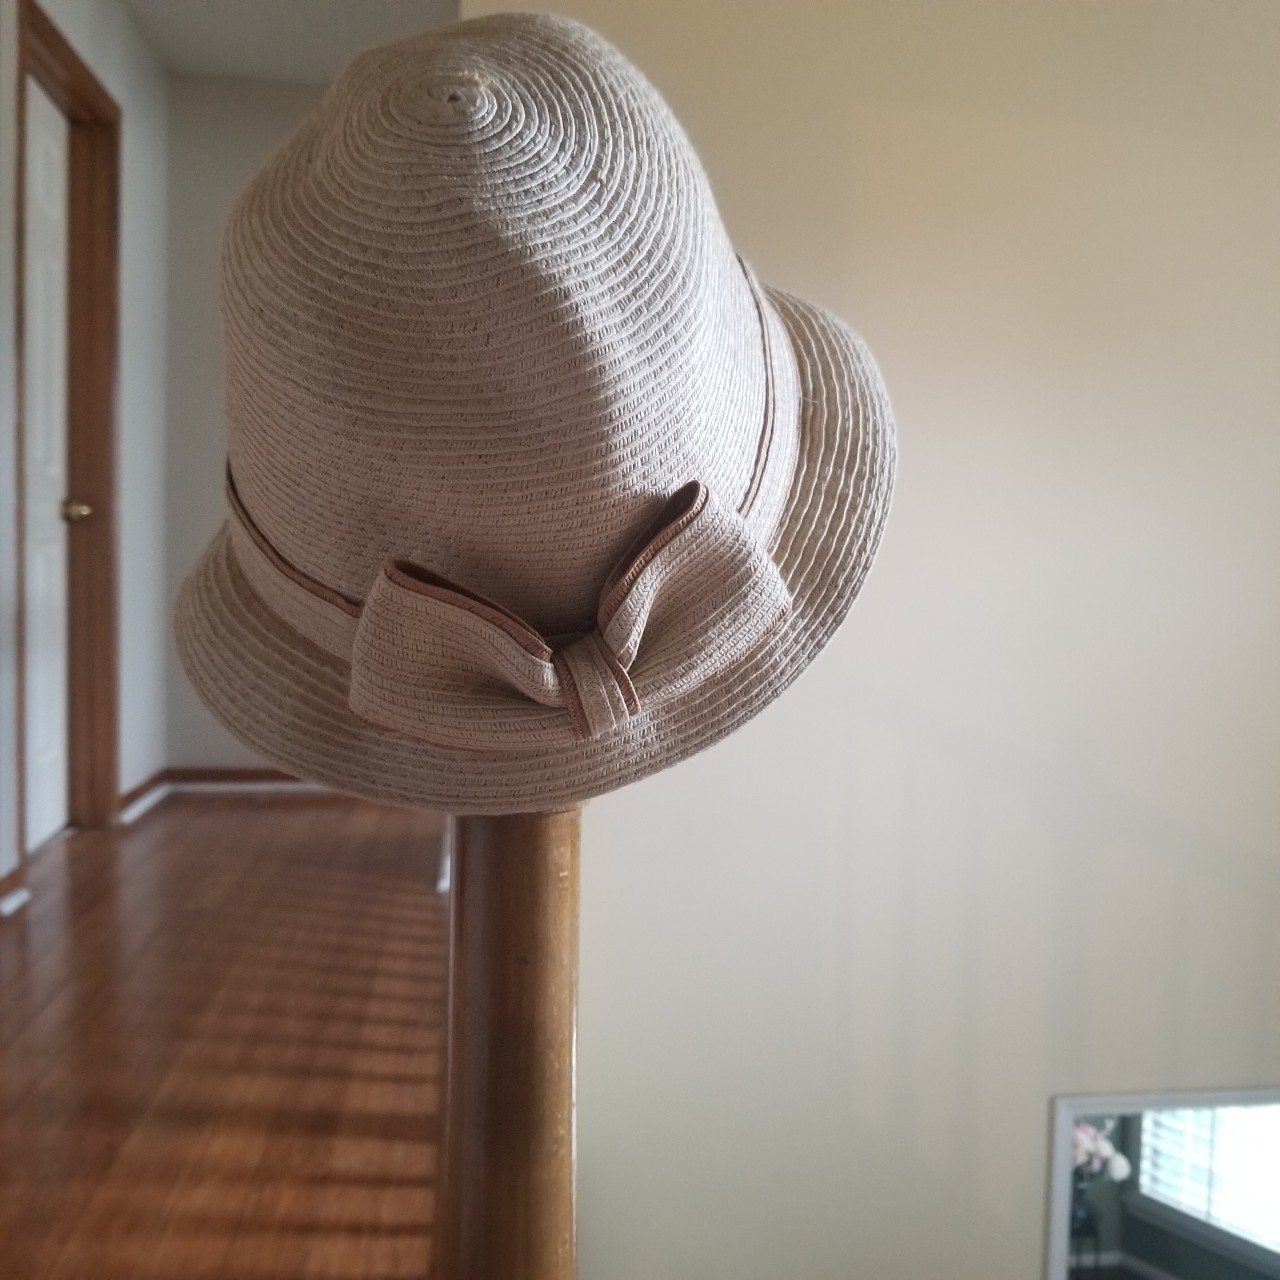 a7c6f78d cutie patootie straw-like woven bucket. $12. Straw boater/sun hat with black